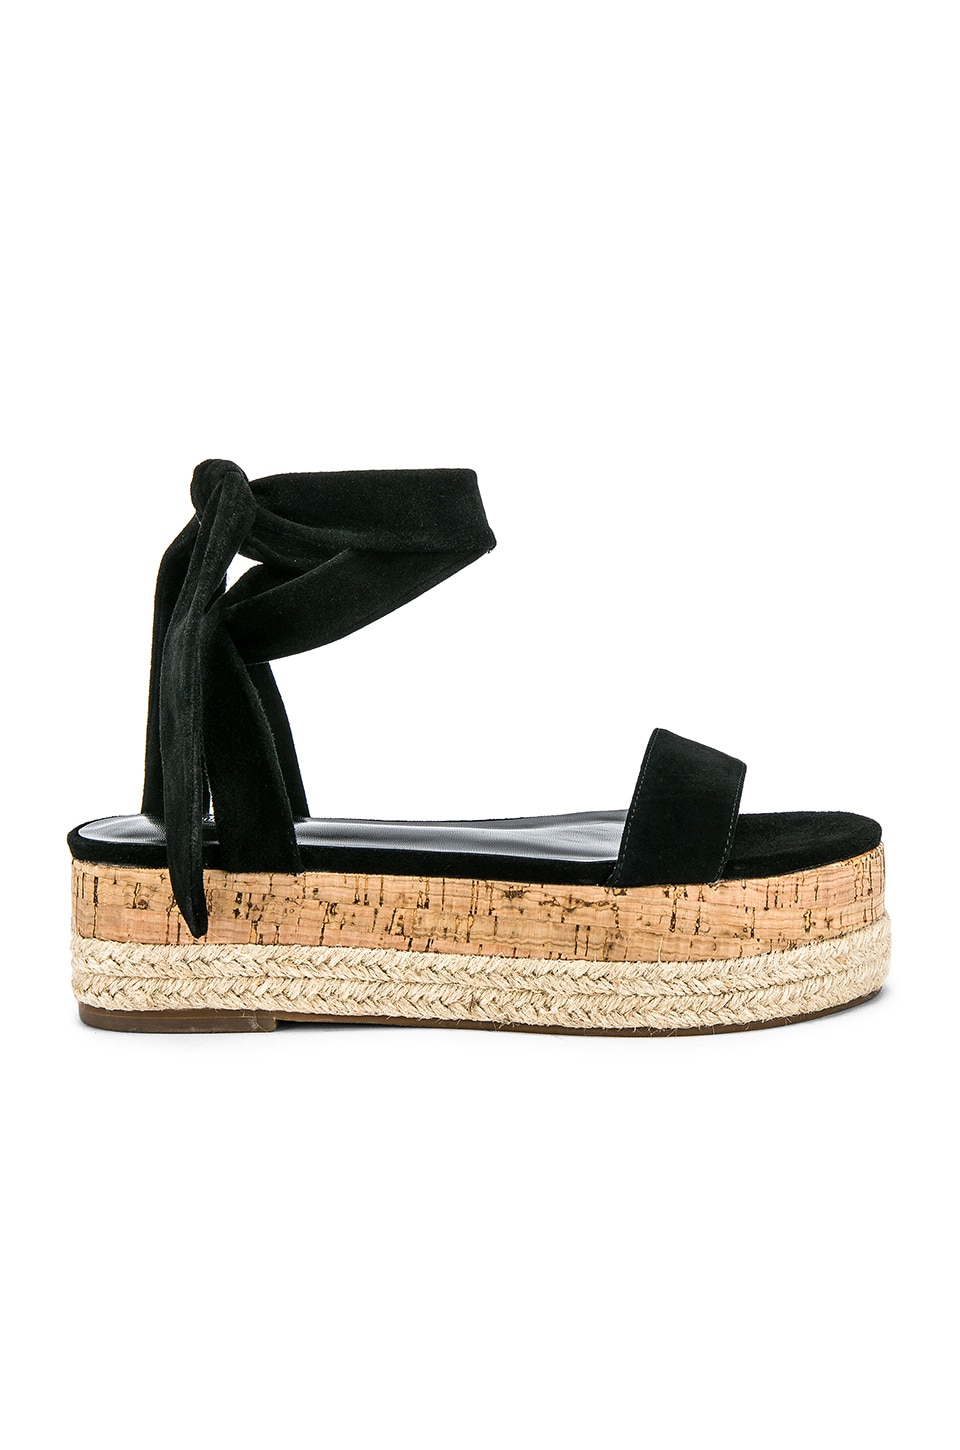 House of Harlow 1960 X REVOLVE Joey Sandal in Black